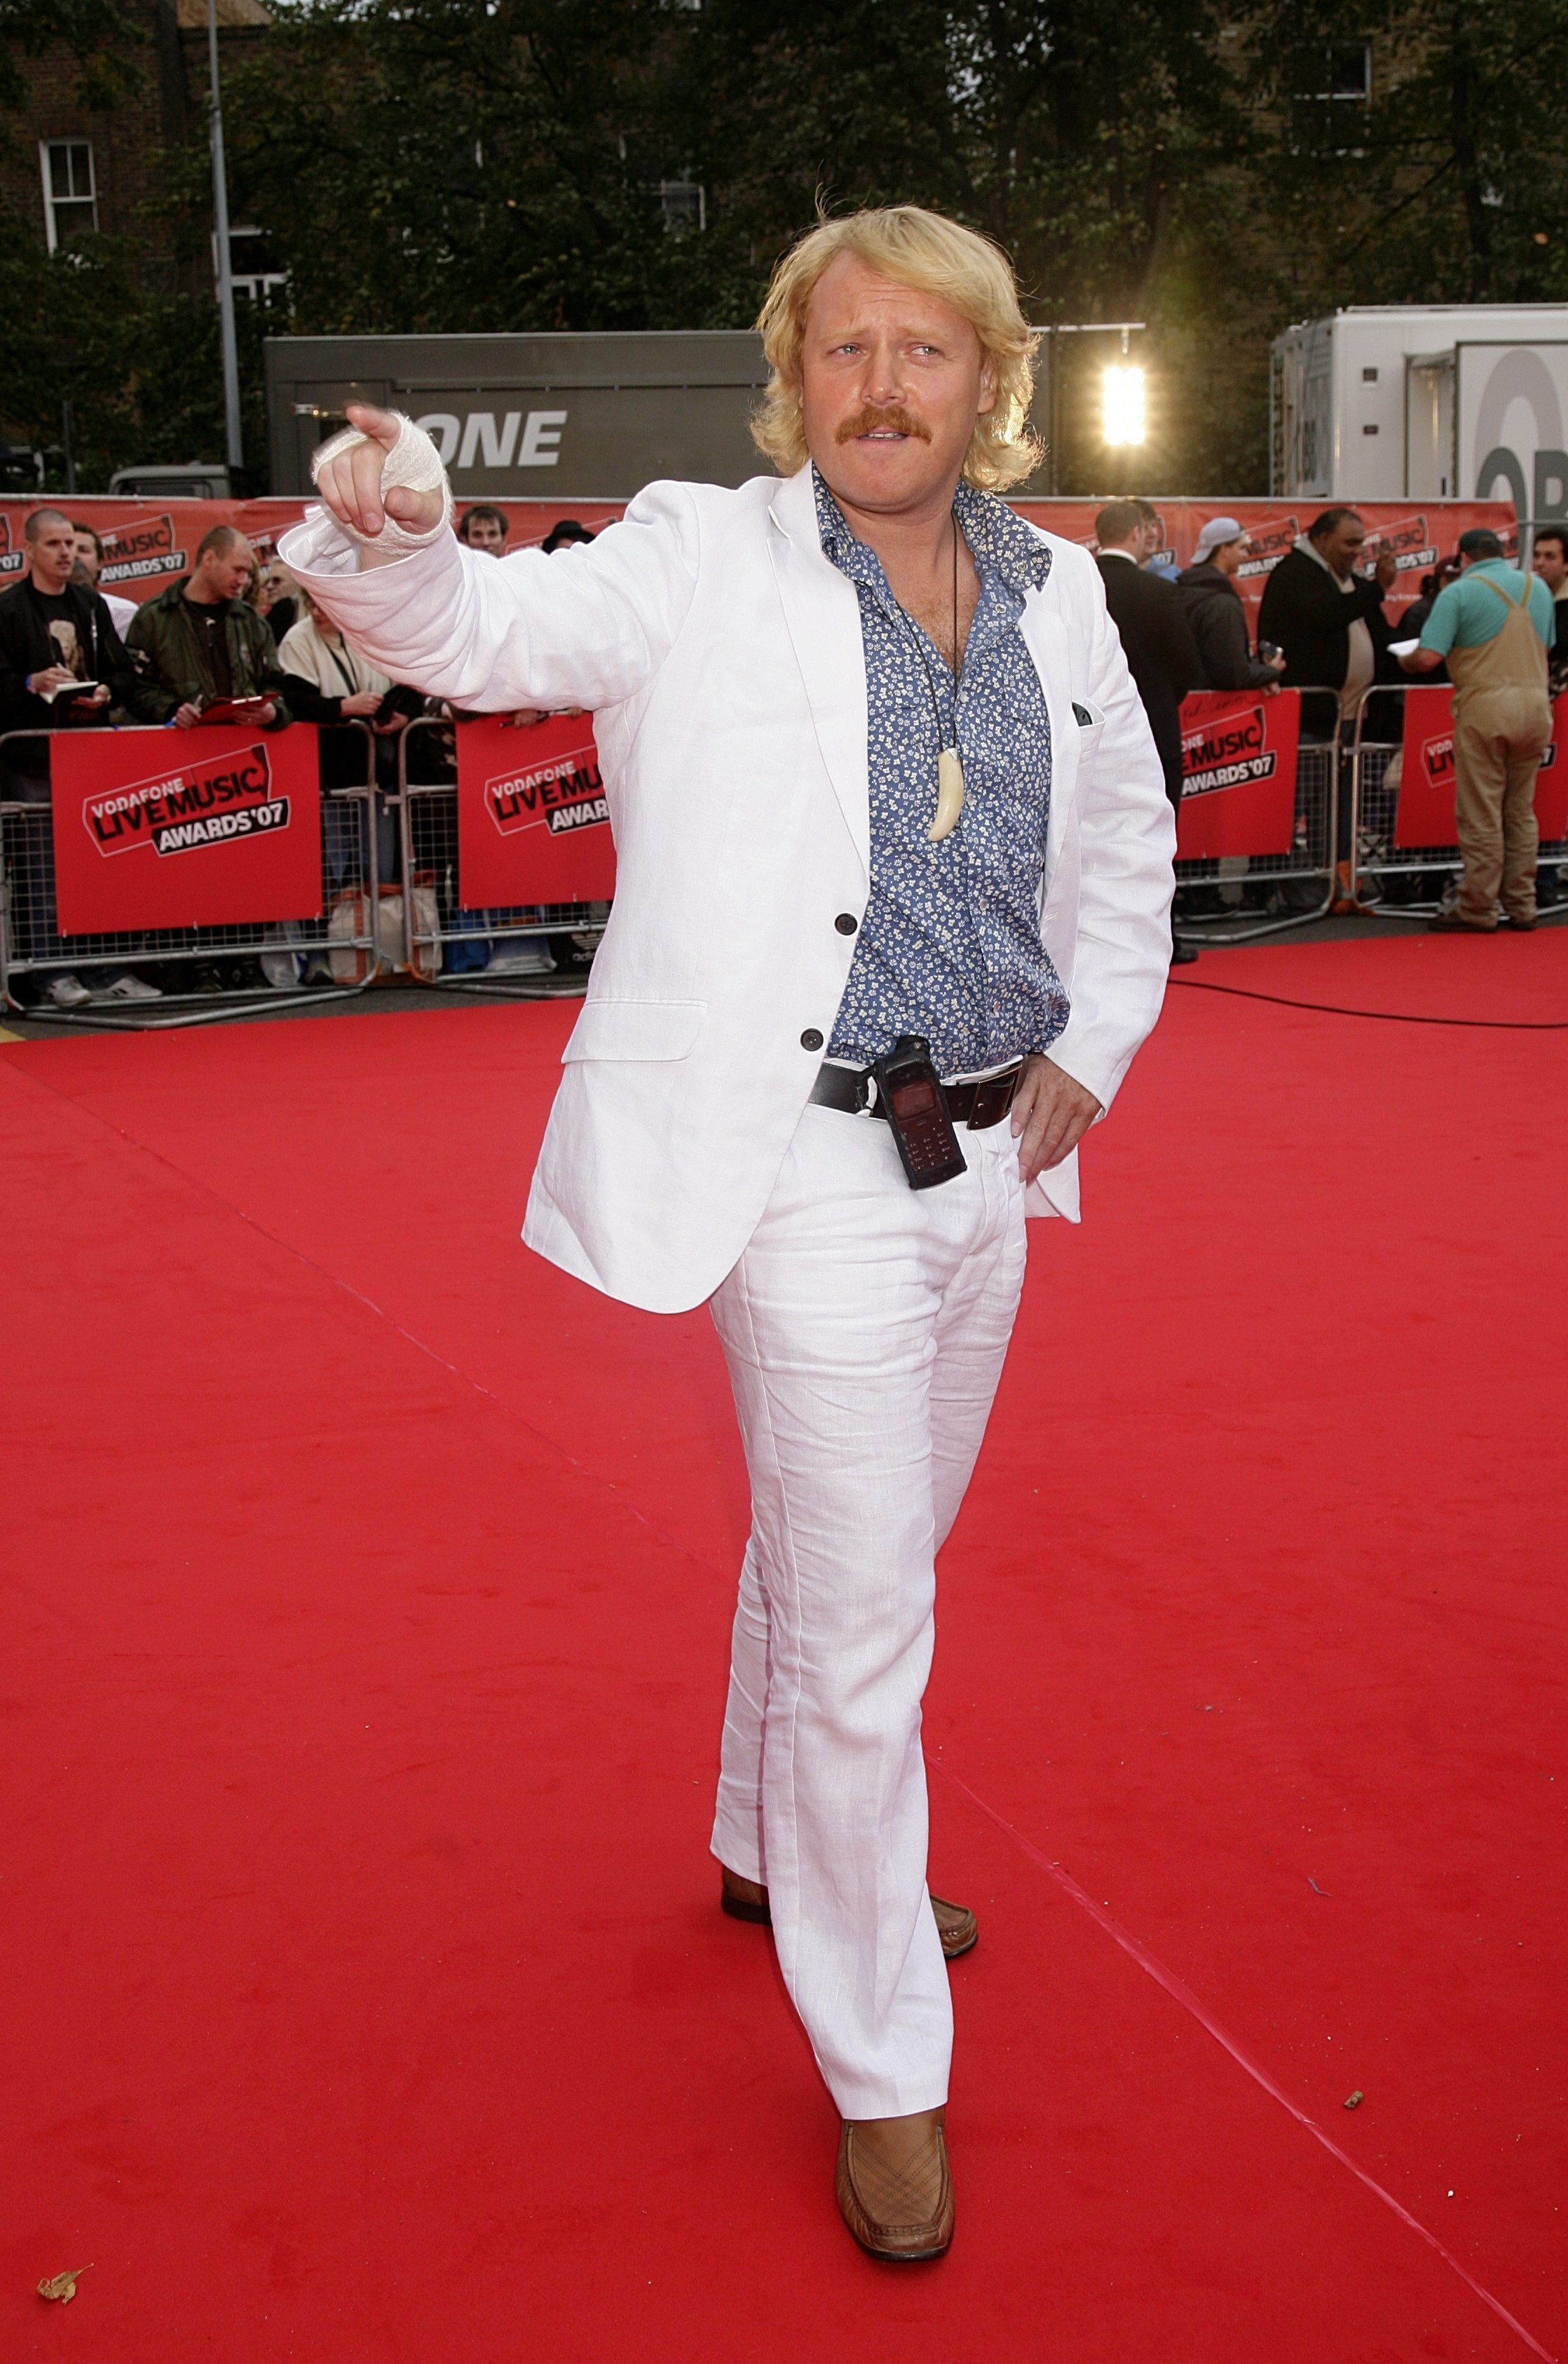 Keith Lemon Finally Explains The Reason For His Hand